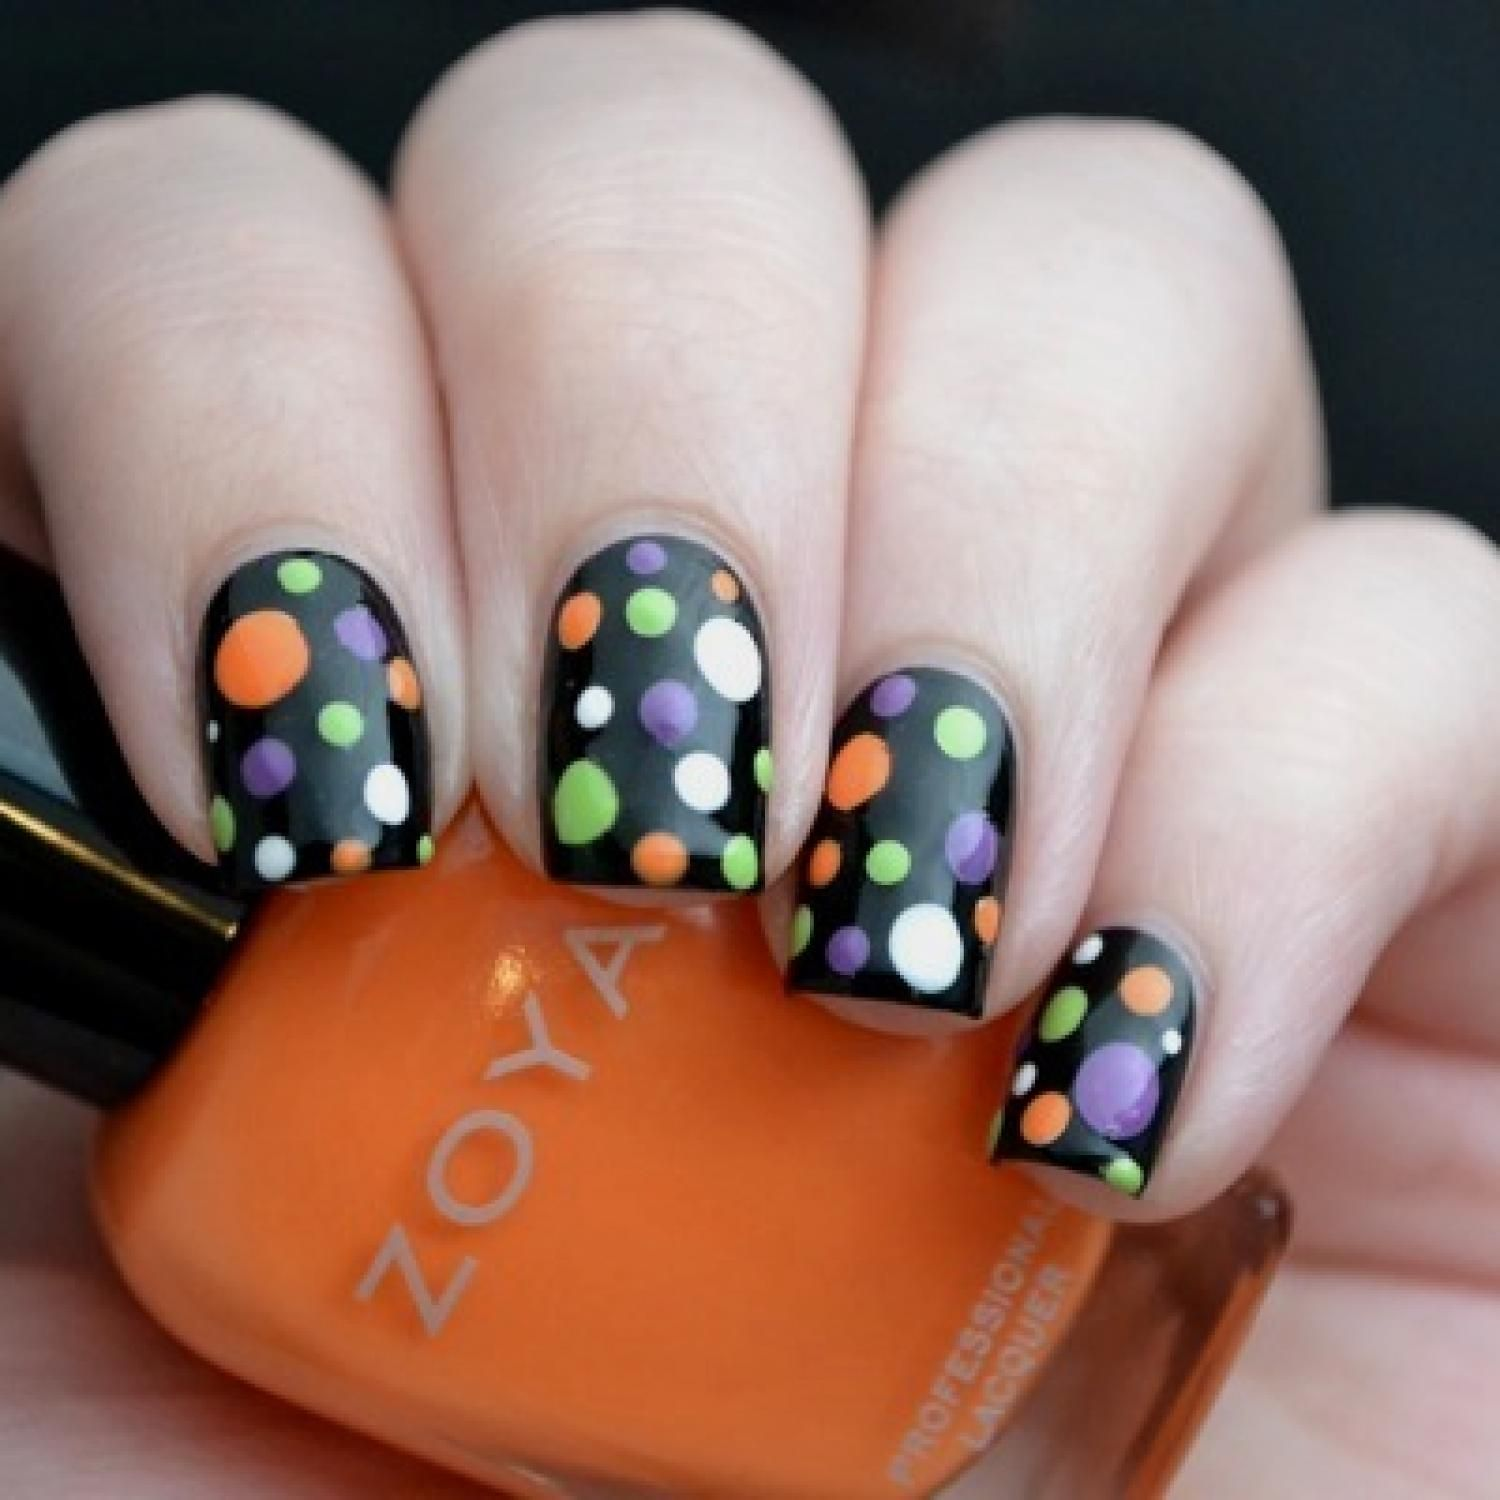 Pinterest\'s Best Halloween Nail Designs | Halloween nail designs ...